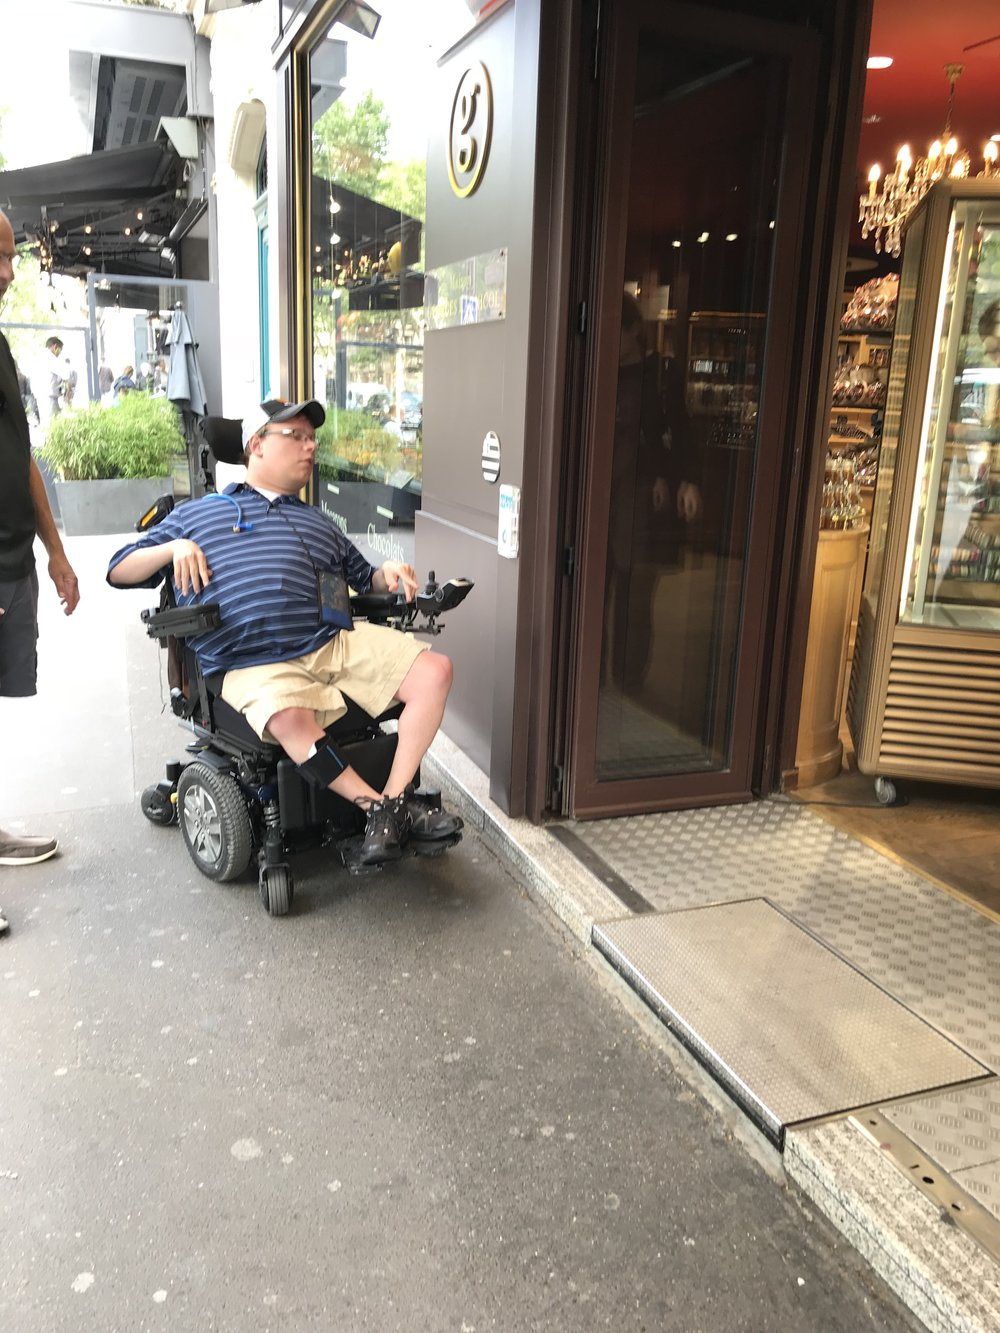 PHOTO: Matthew sitting in his wheelchair in a blue shirt and cap outside a store in Paris, France.  He is looking at a gray platform.